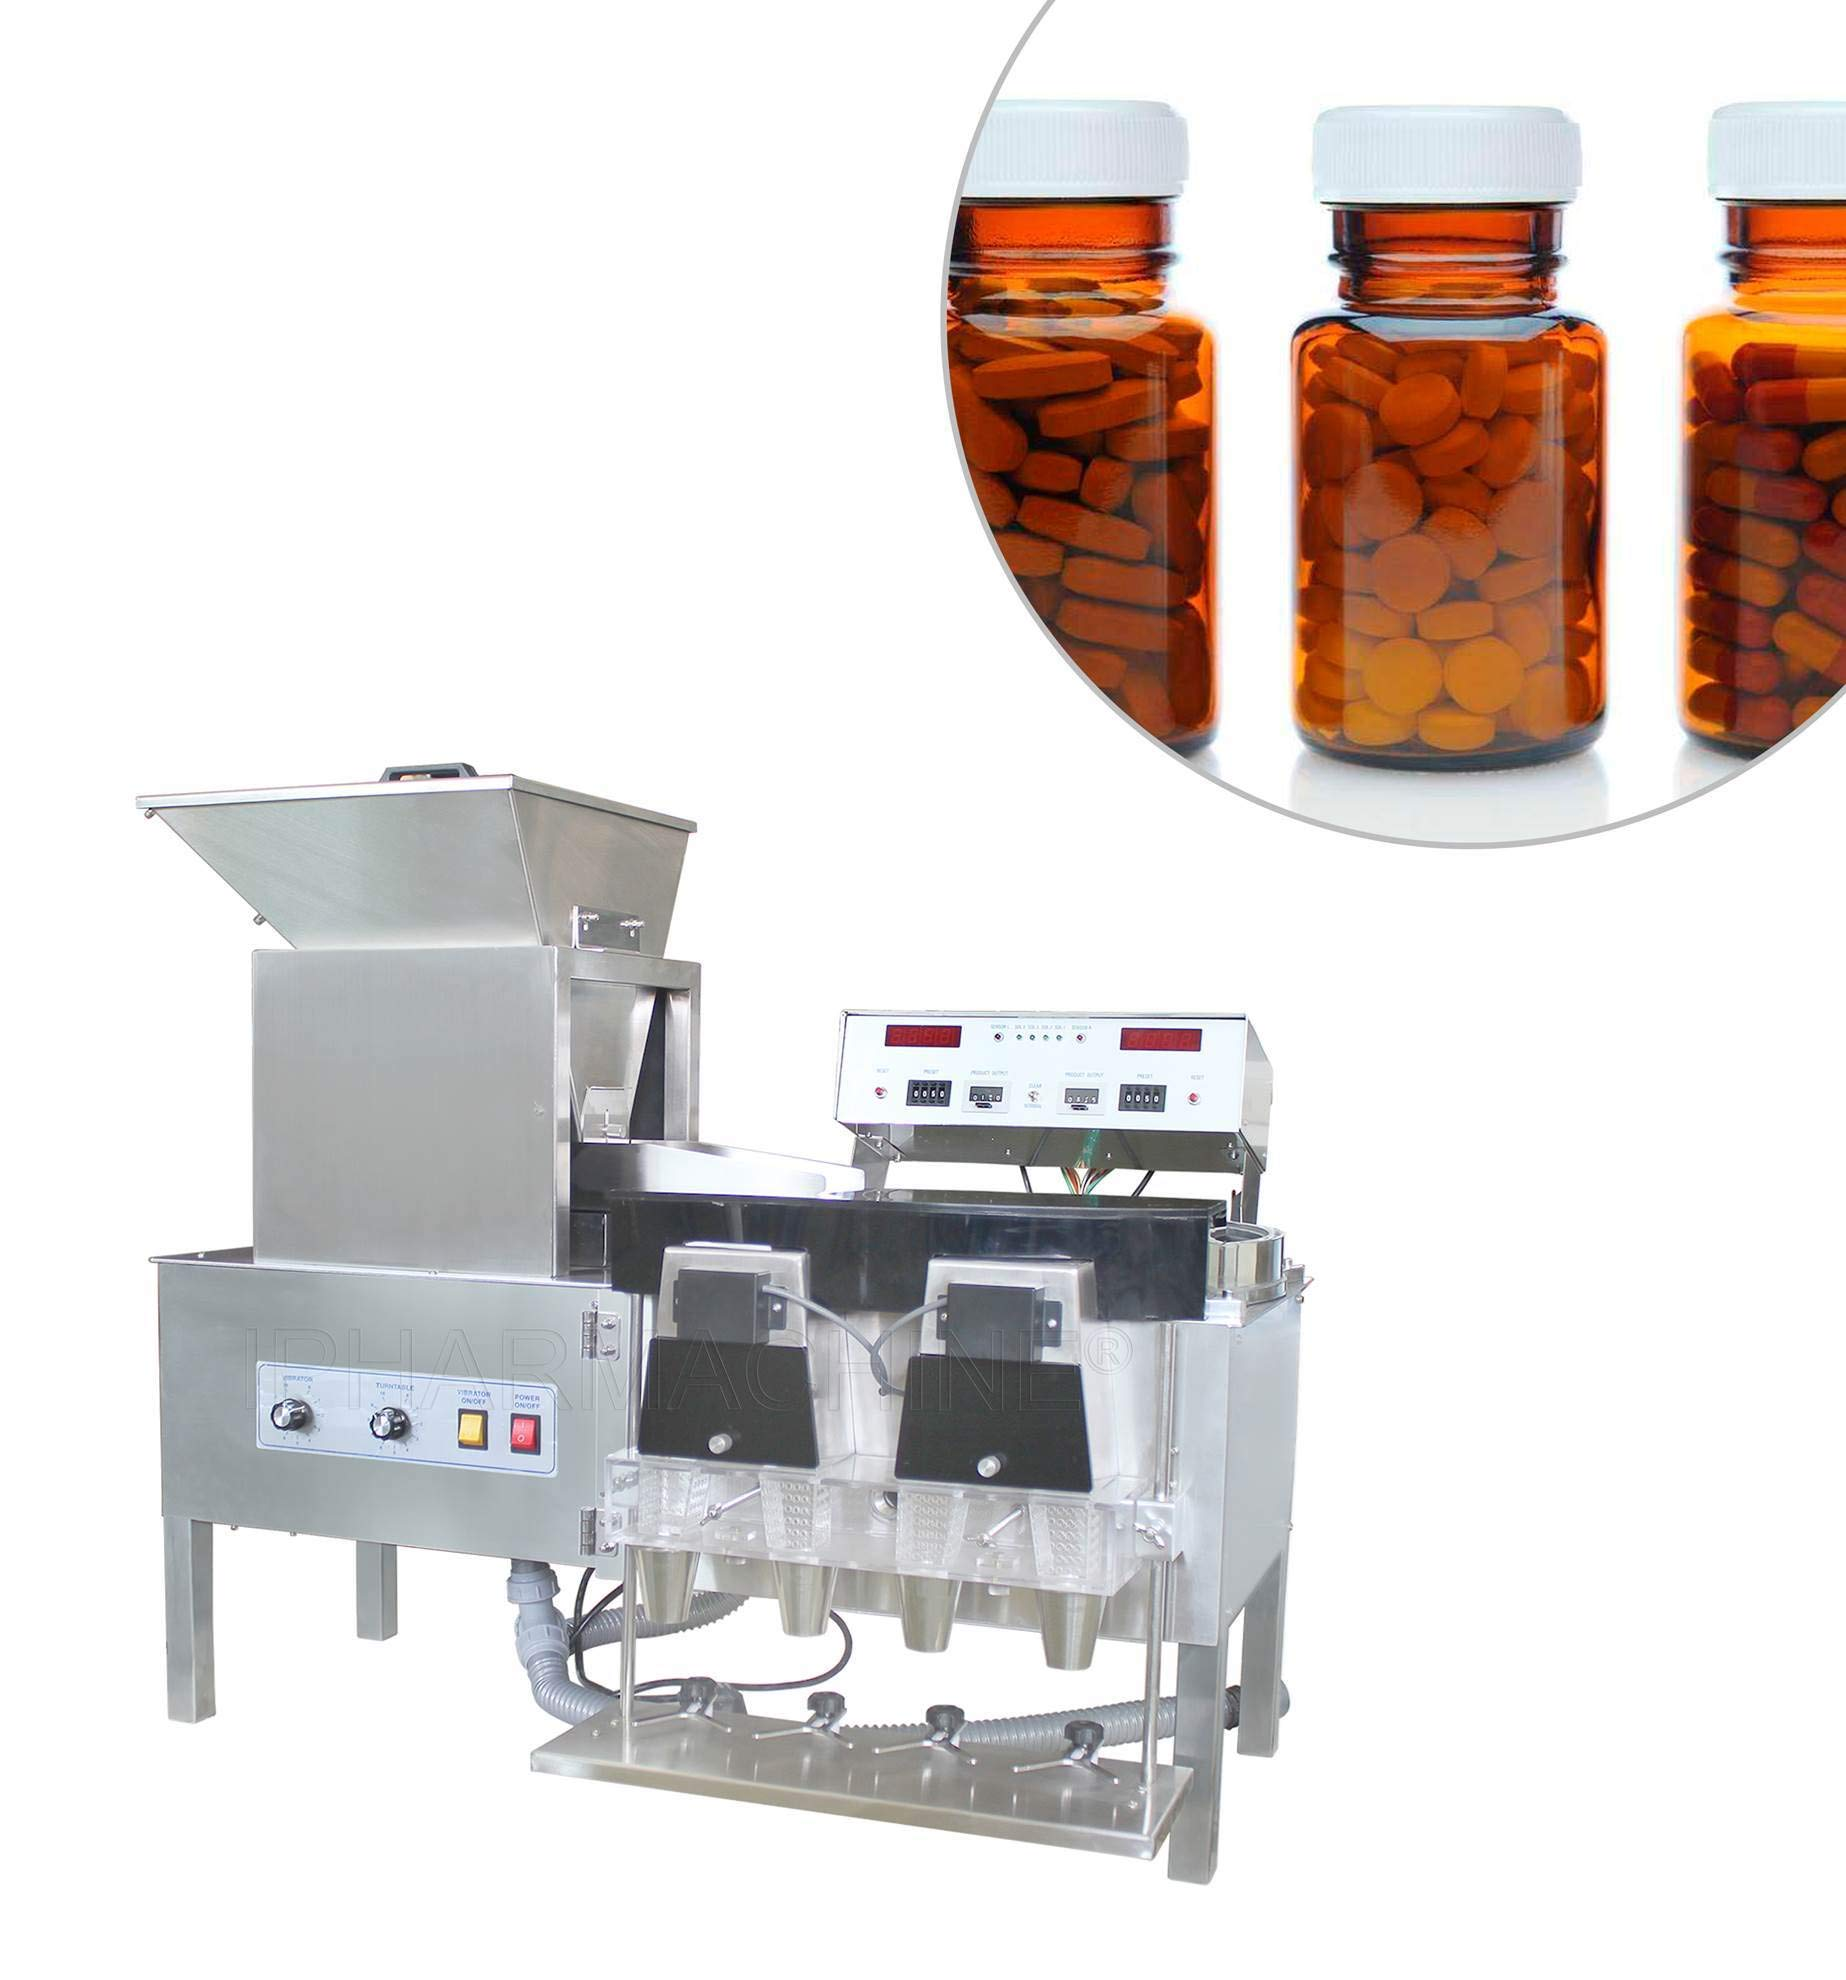 CapsulCN! Automatic Stainless Steel Counting Machine YL-4 Capsule/Pills Counter 110V/60Hz